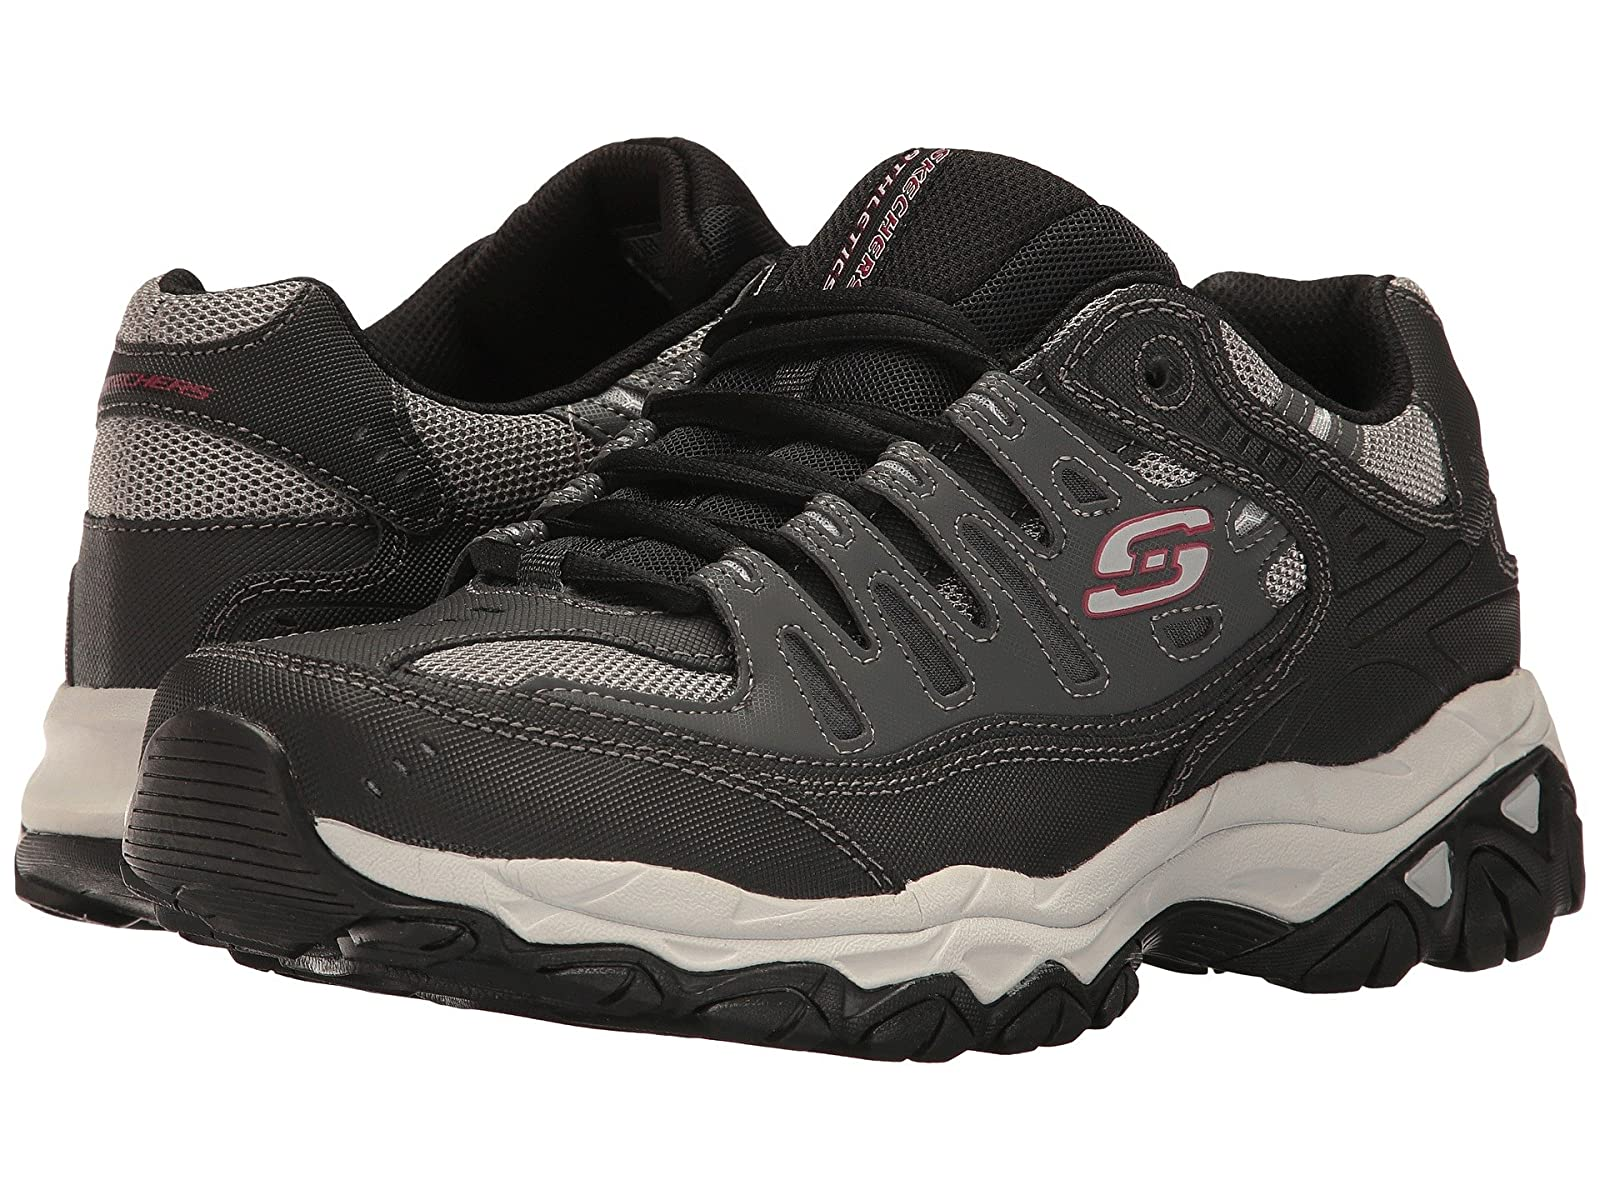 SKECHERS Afterburn M. Fit good :Man/Woman: Have good Fit goods 7e7bdb